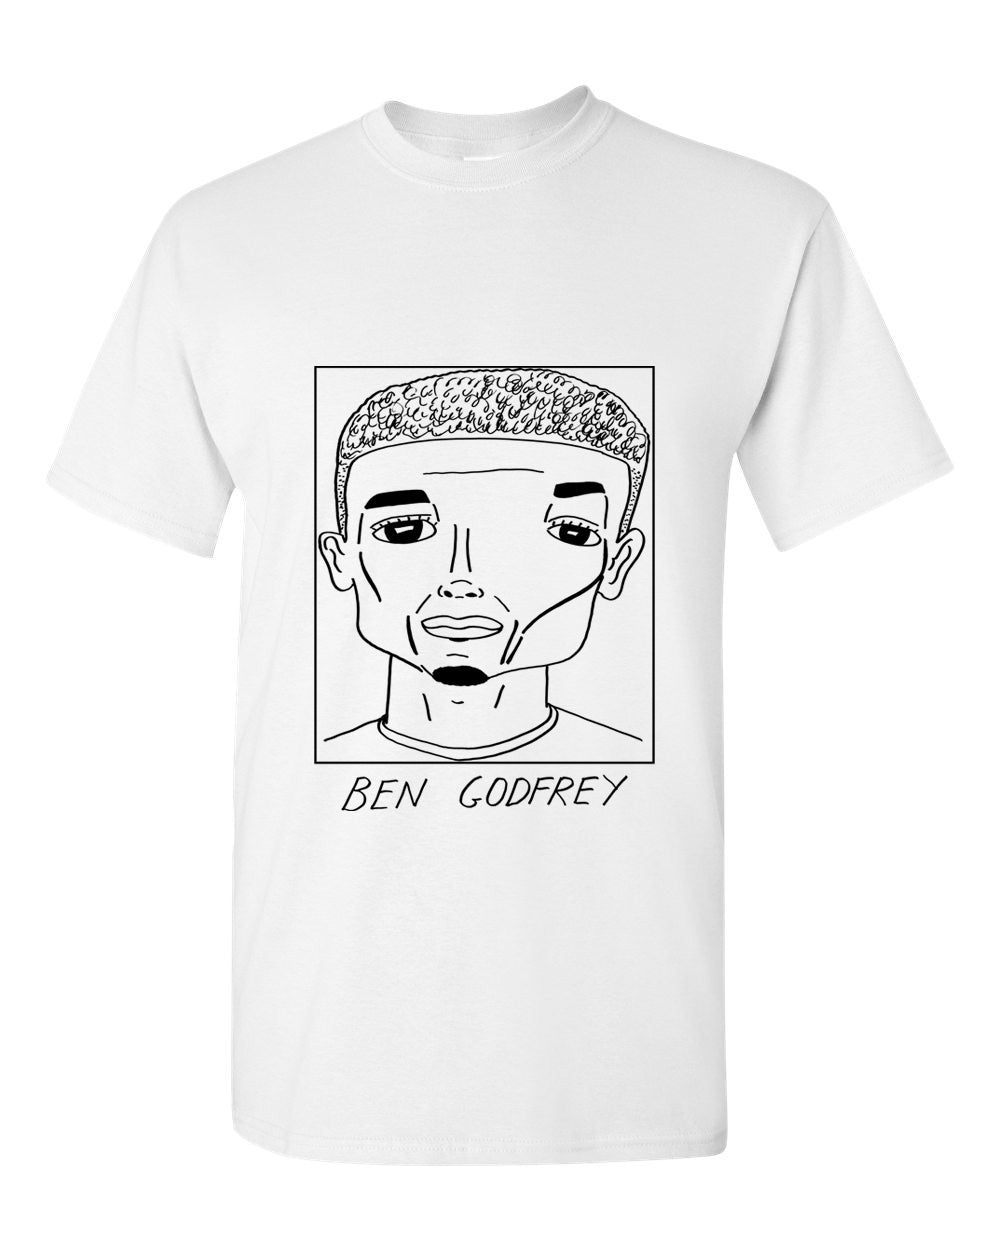 Badly Drawn Footballers T-shirt - Ben Godfrey